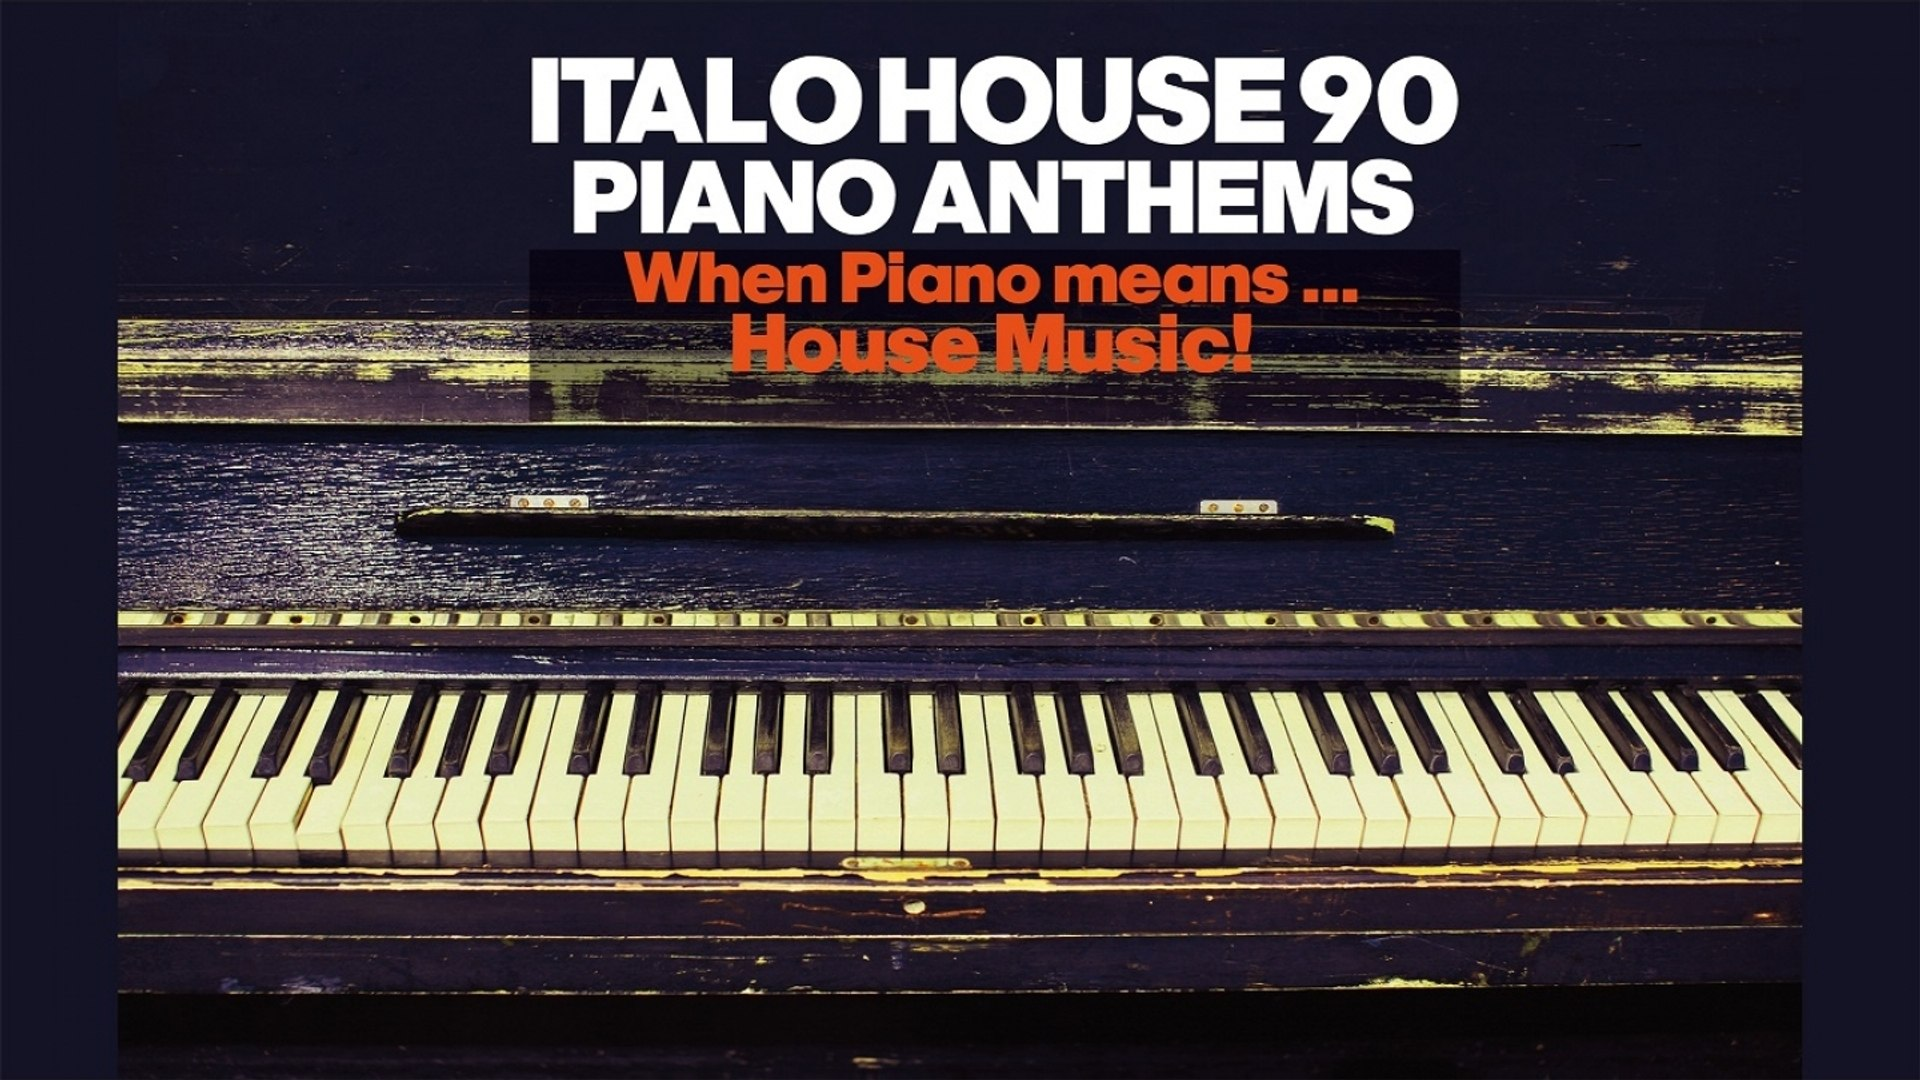 V.A. - Top Italian Dance House '90 Piano Anthems- 2 Hours Best Chillout Lounge Music